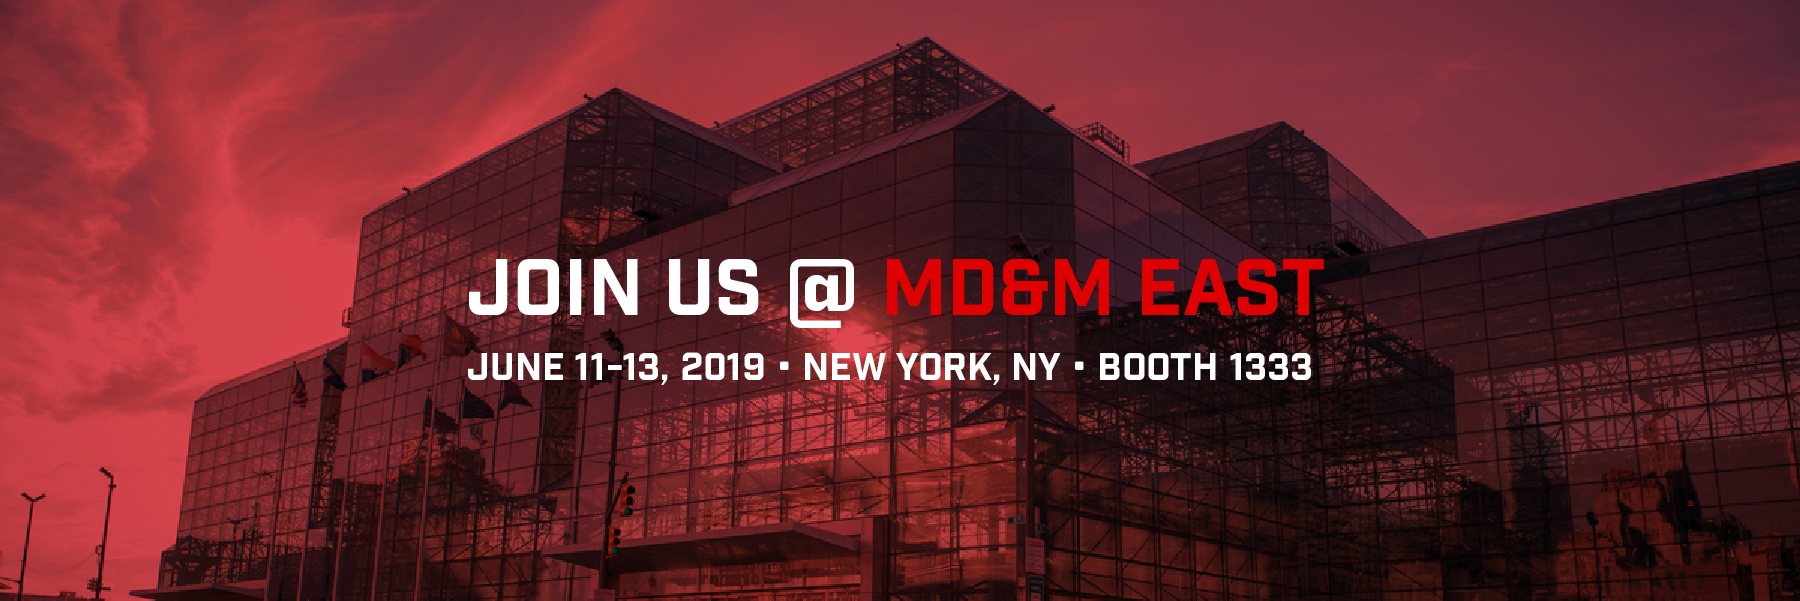 MD&M East 2019 | Booth 1333 | June 11 – 13, 2019 | New York, NY